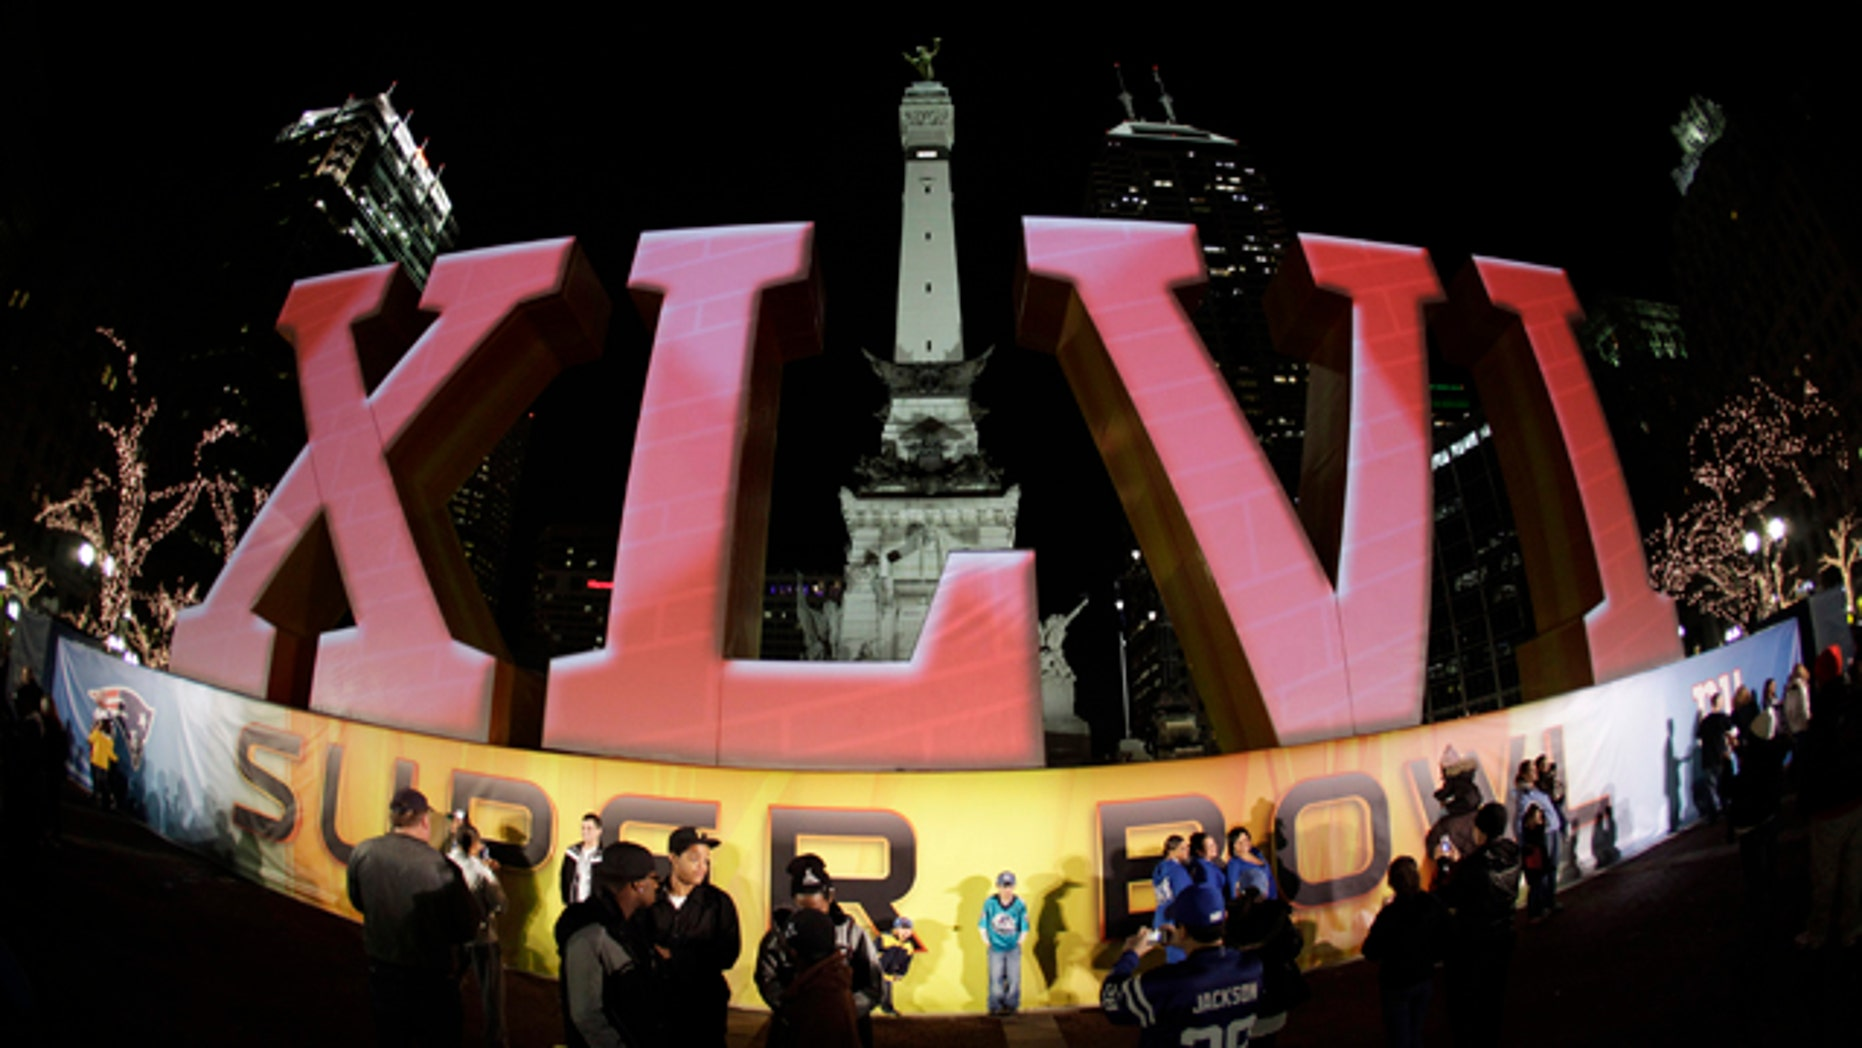 Feb. 1, 2012: In this photo taken with a fisheye lens, football fans pose for photos in front of the Super Bowl XLVI logo on Monument Circle in Indianapolis. The New England Patriots are scheduled to face the New York Giants in Super Bowl XLVI on Feb. 5.